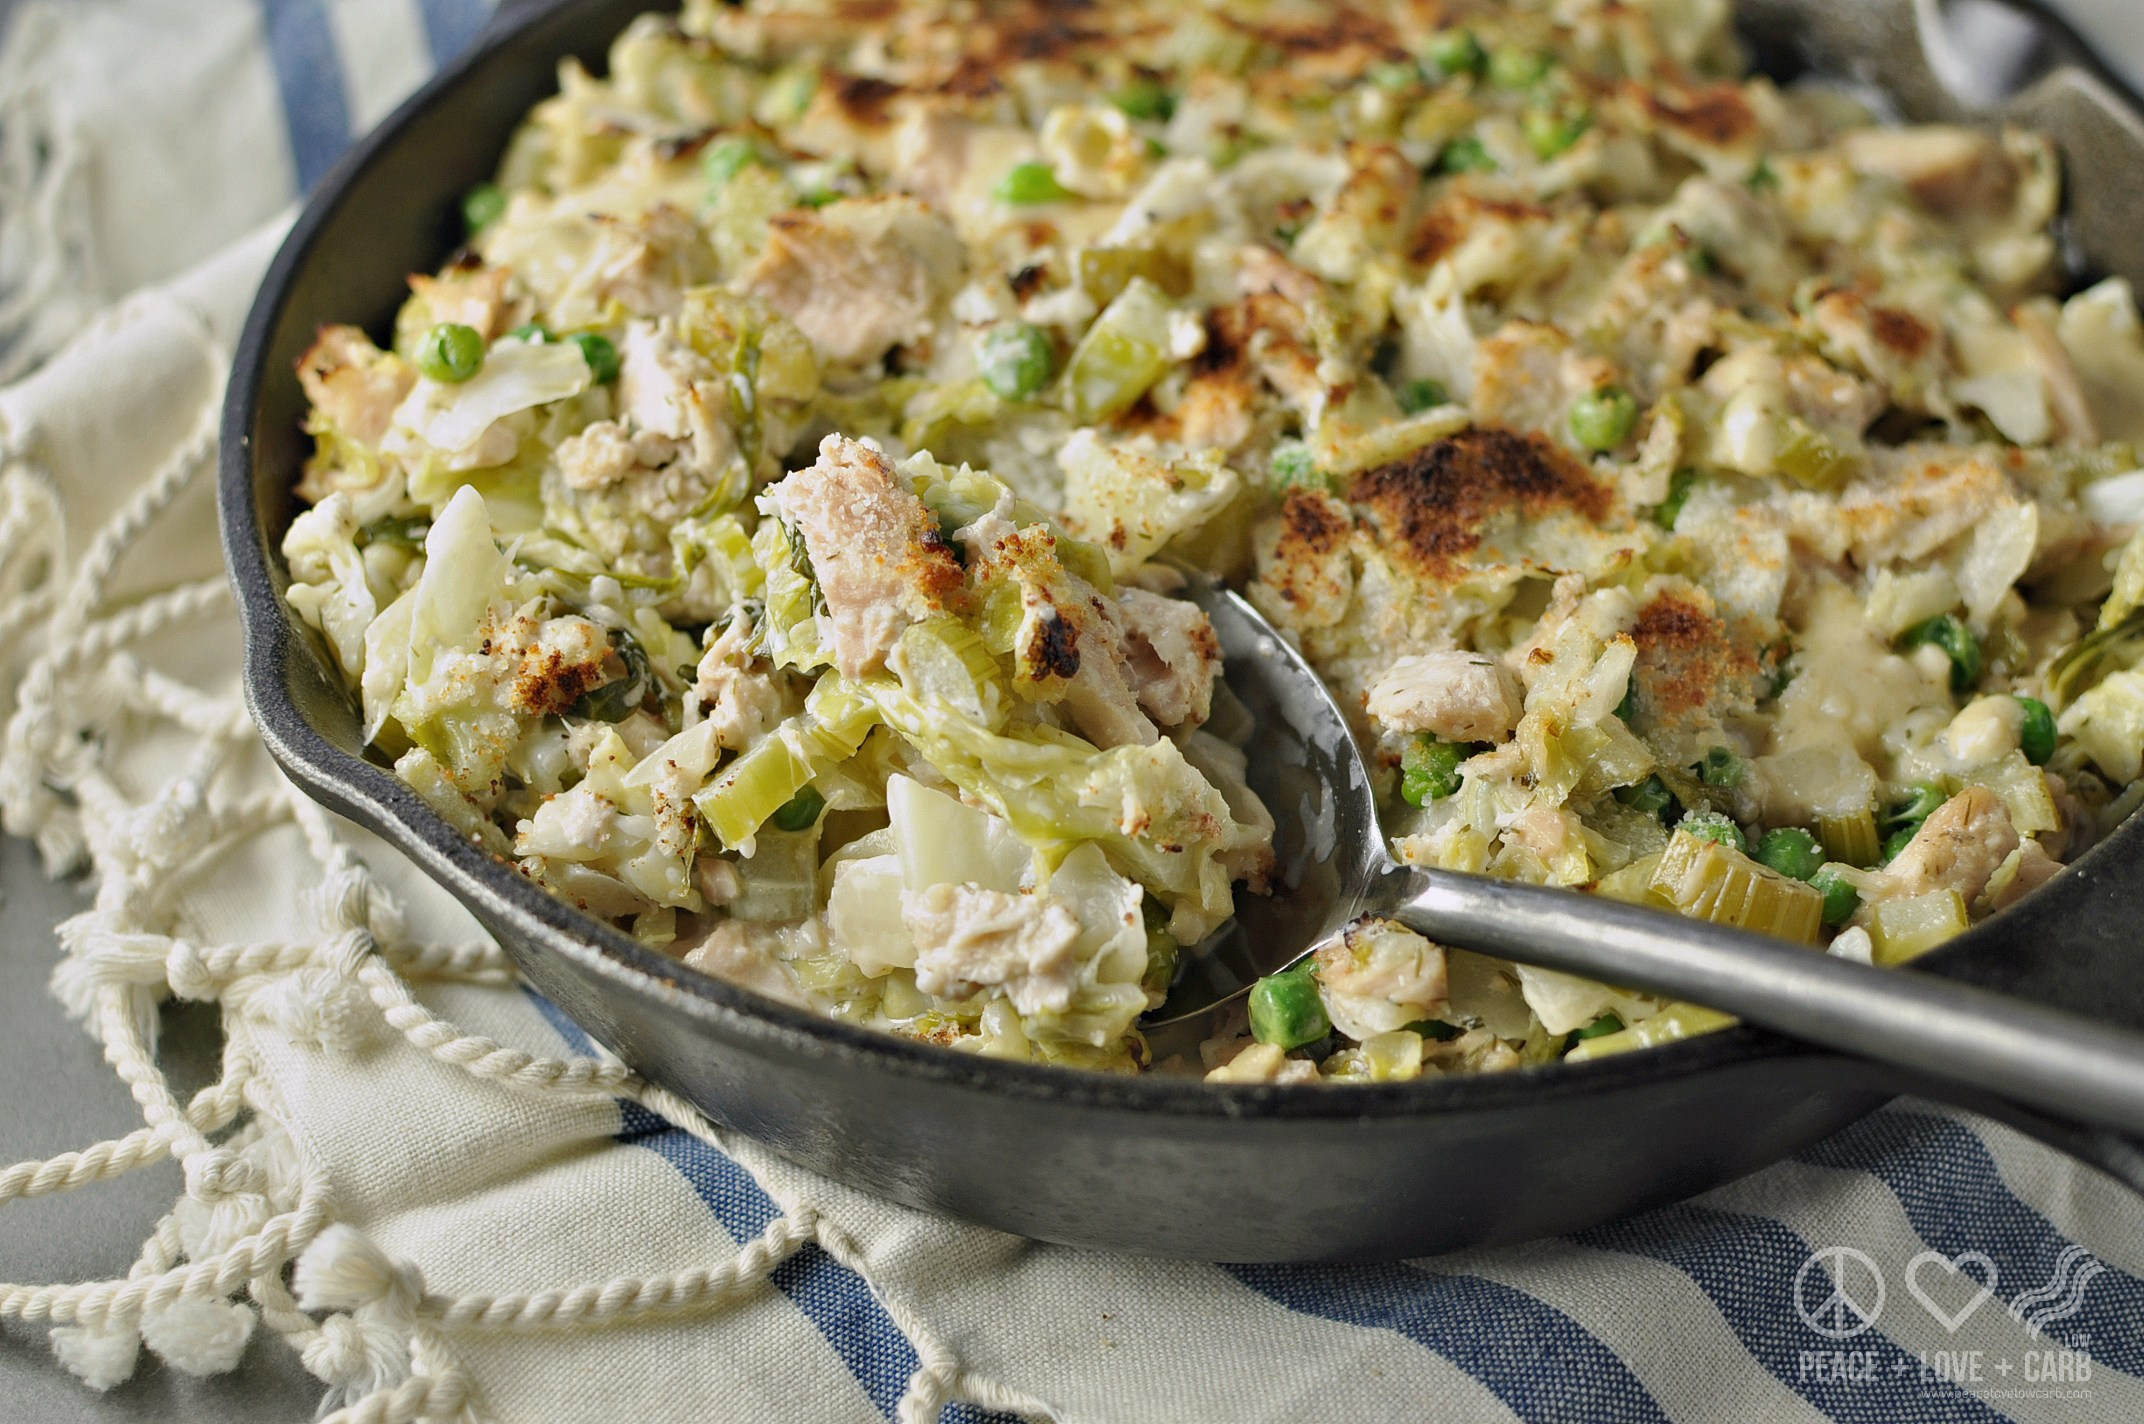 Low-Carb Tuna Casserole with Cabbage Noodles